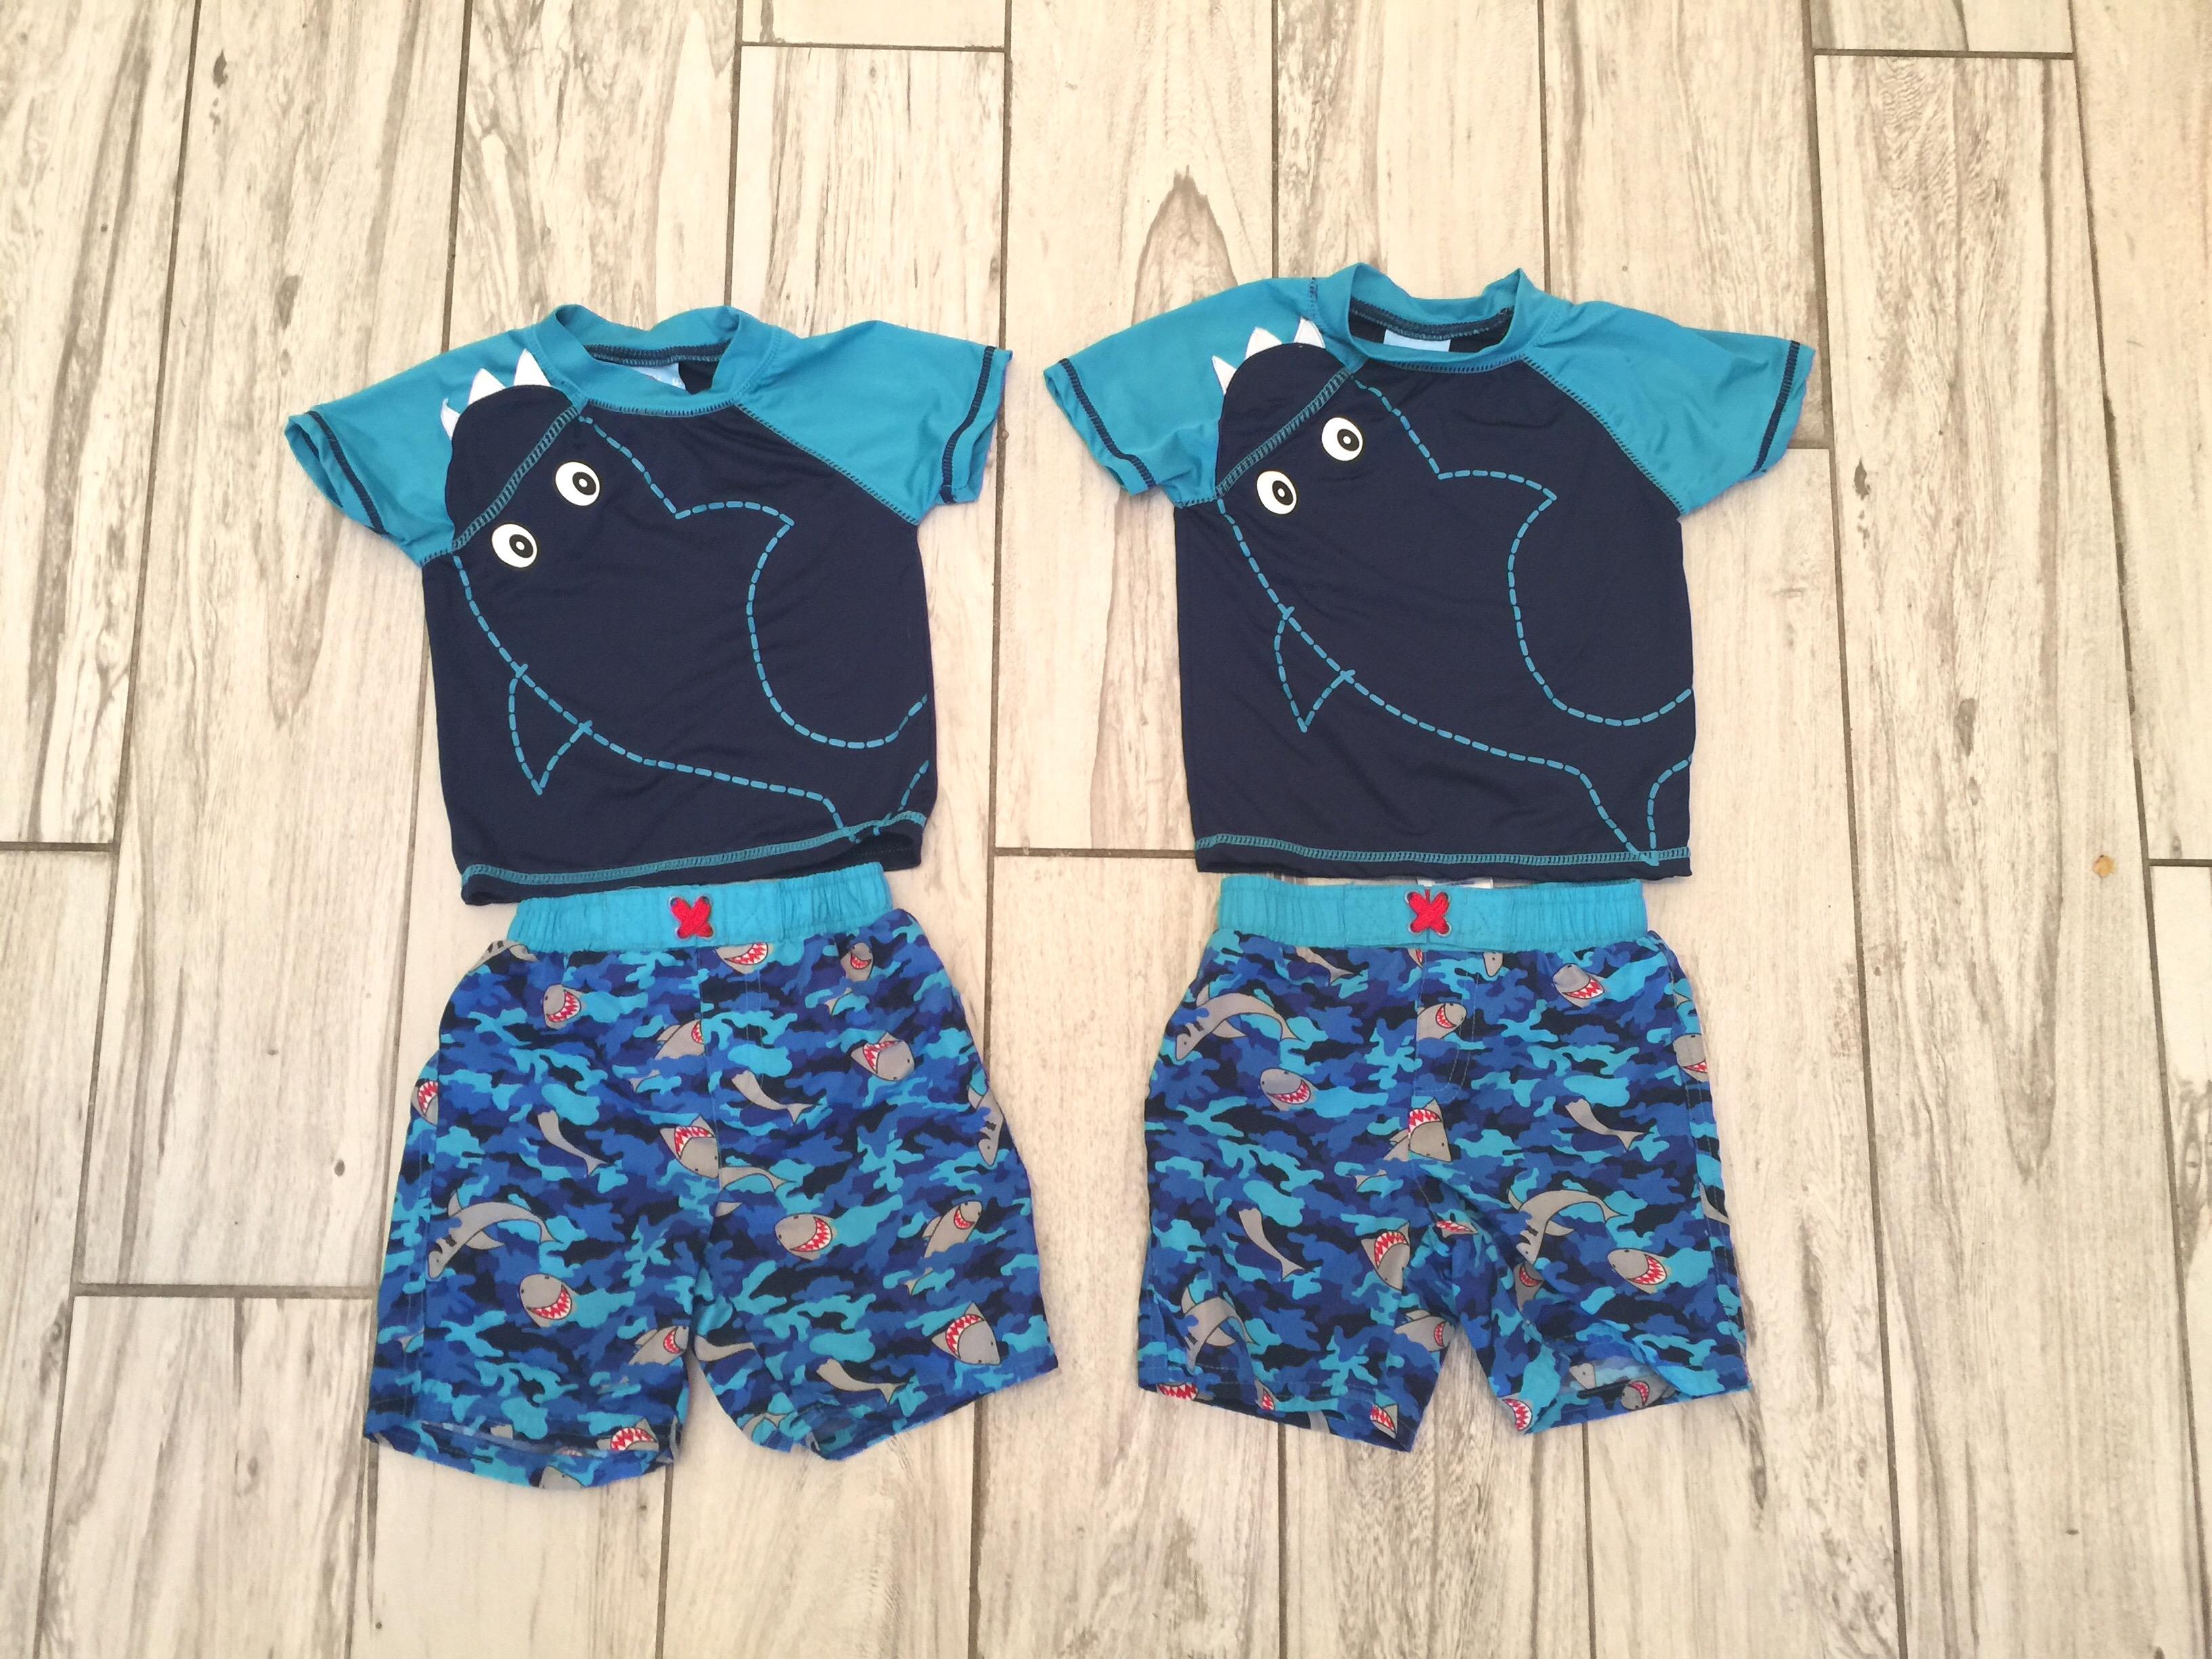 Twin Baby Bargains Buy and Sell used Twins clothing & Baby Gear